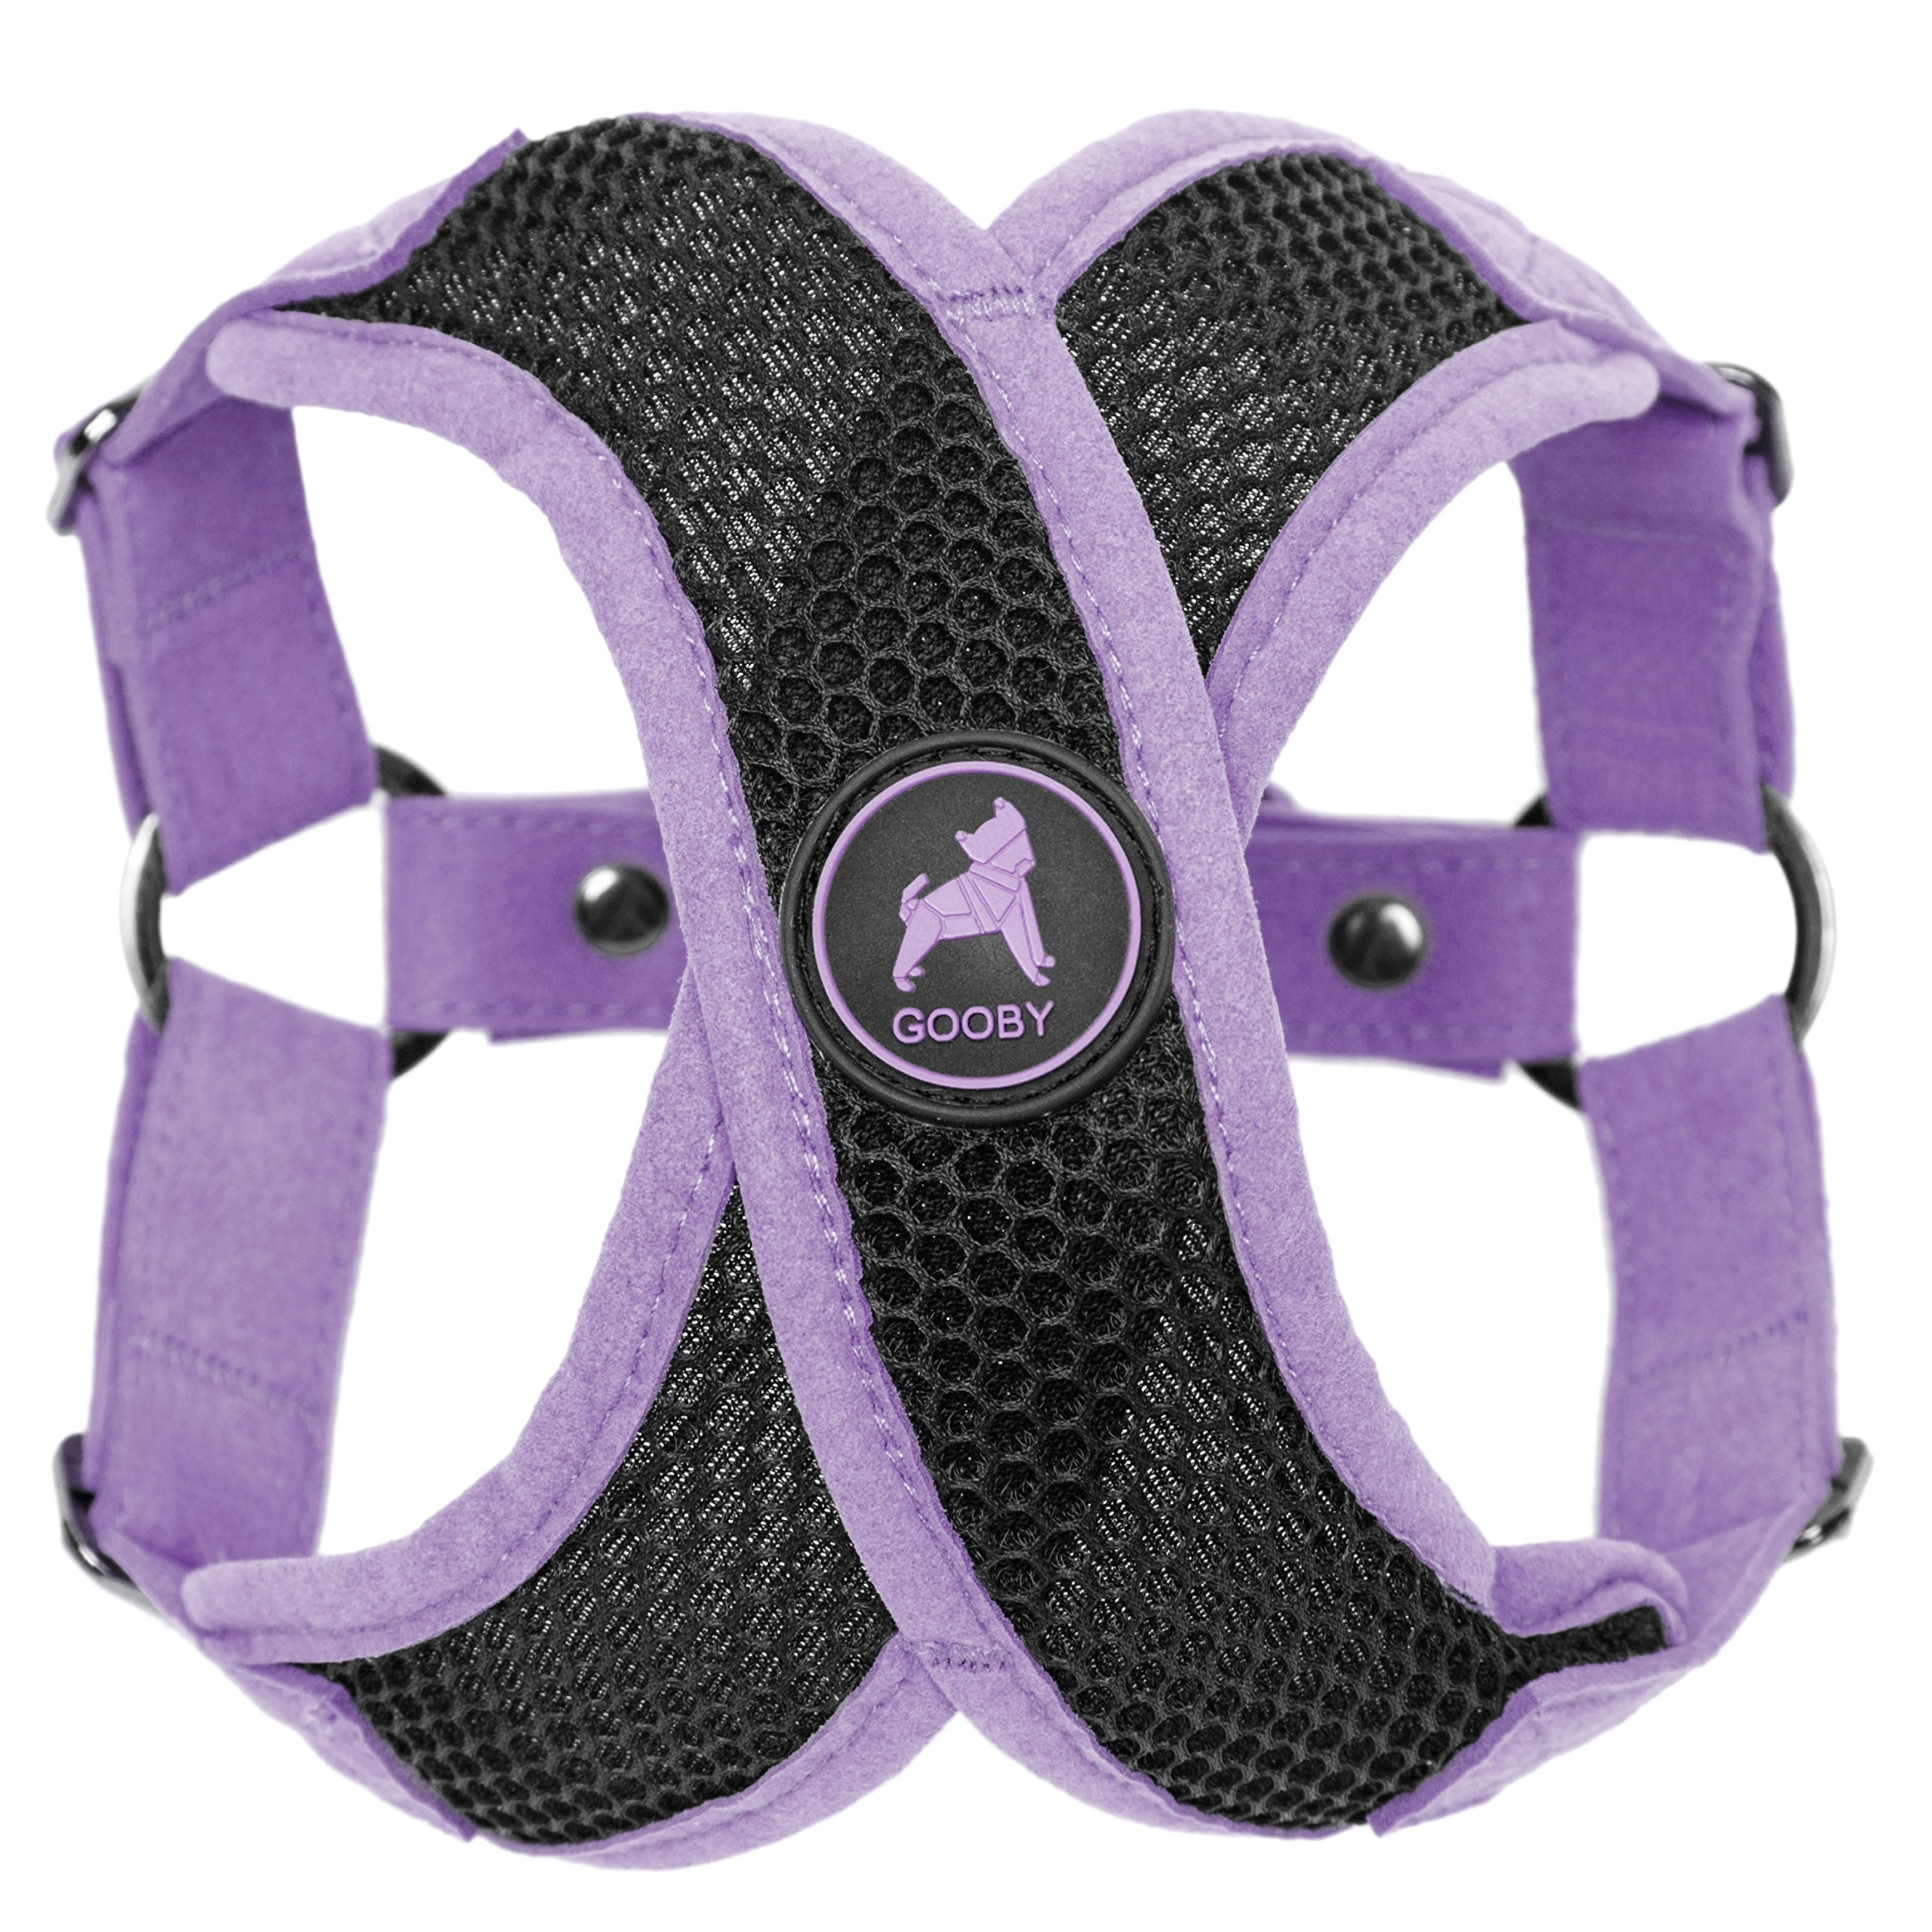 Gooby - Active X Step-in Harness, Choke Free Small Dog Harness with Synthetic Lambskin Soft Strap, Purple, Medium